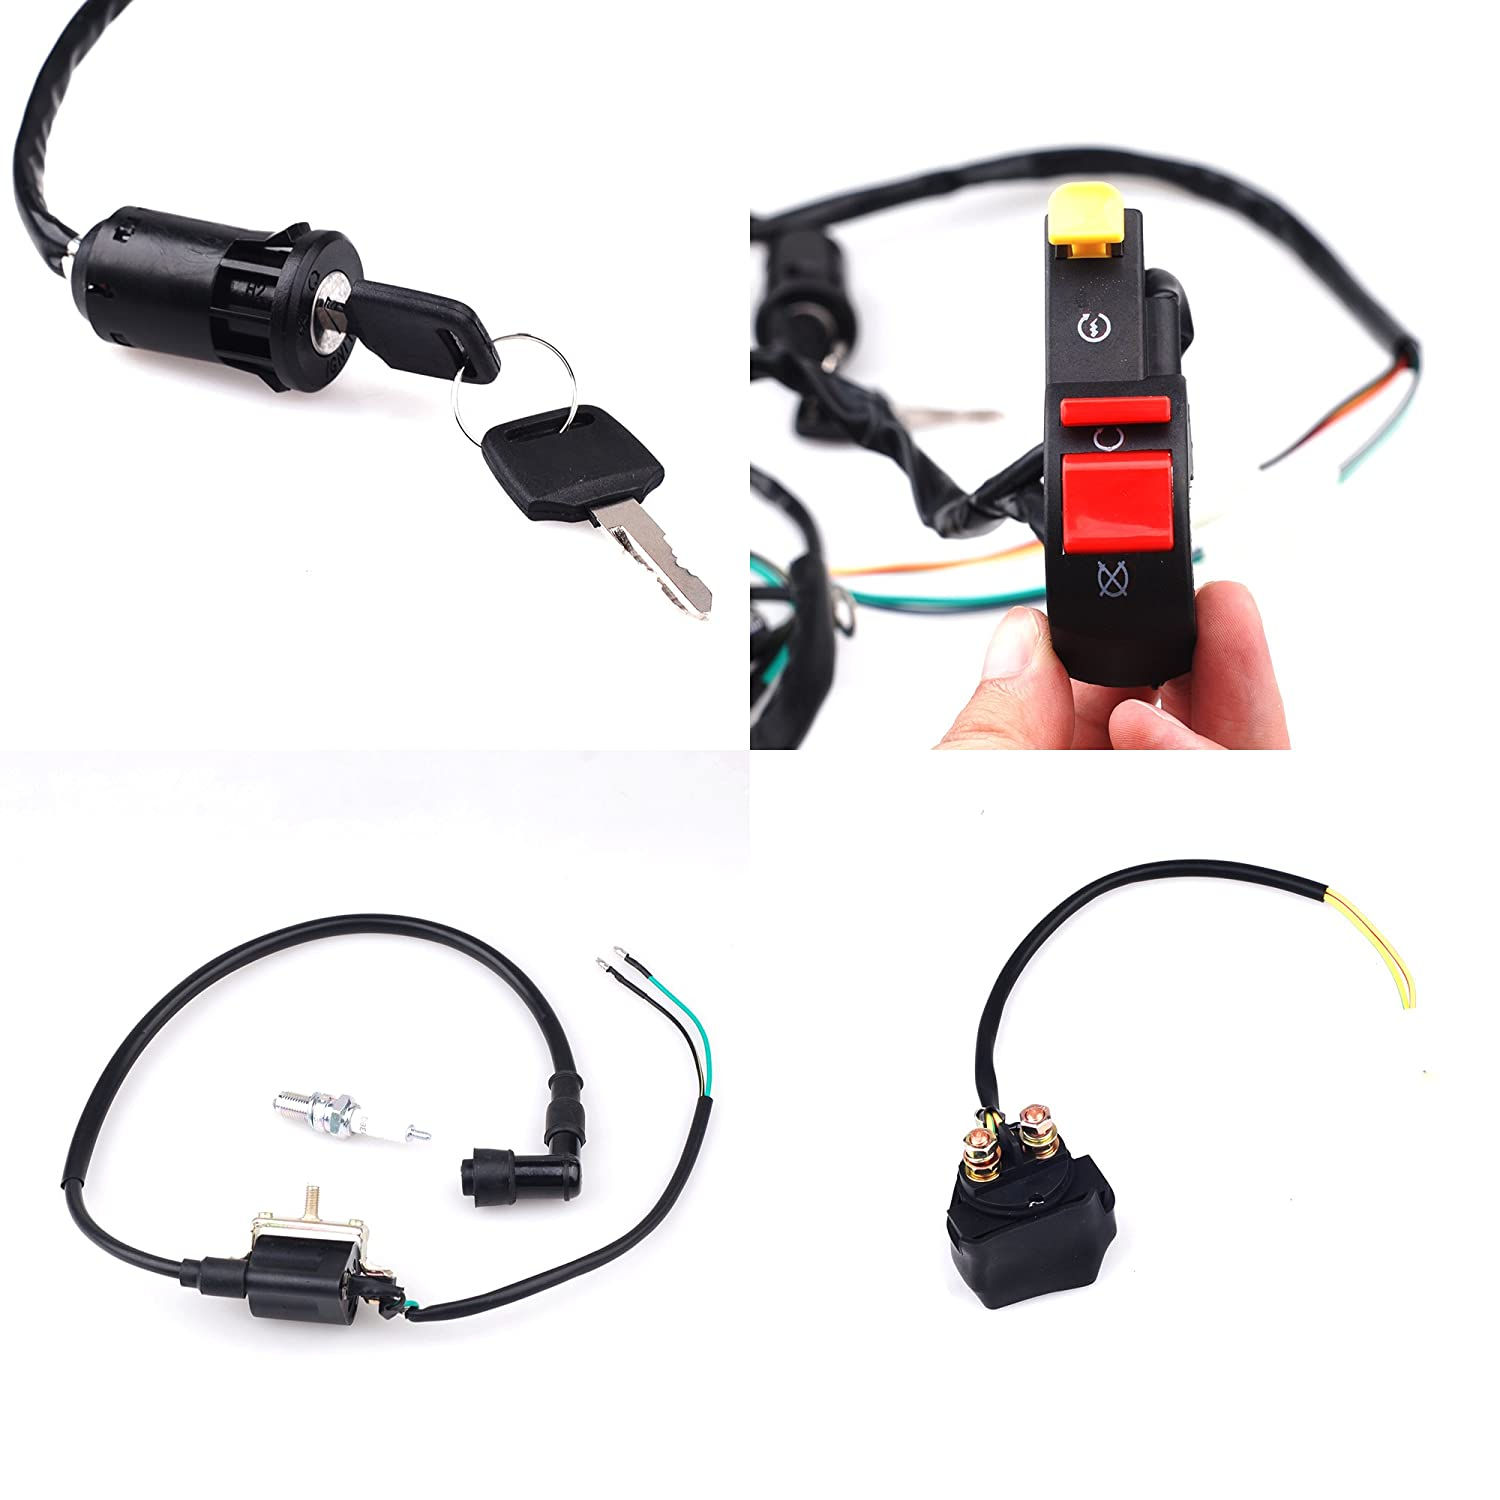 CISNO Complete Electrics CDI Coil Wiring Loom Harness Kick for 50cc 110cc 125cc ATV Dirt Bike